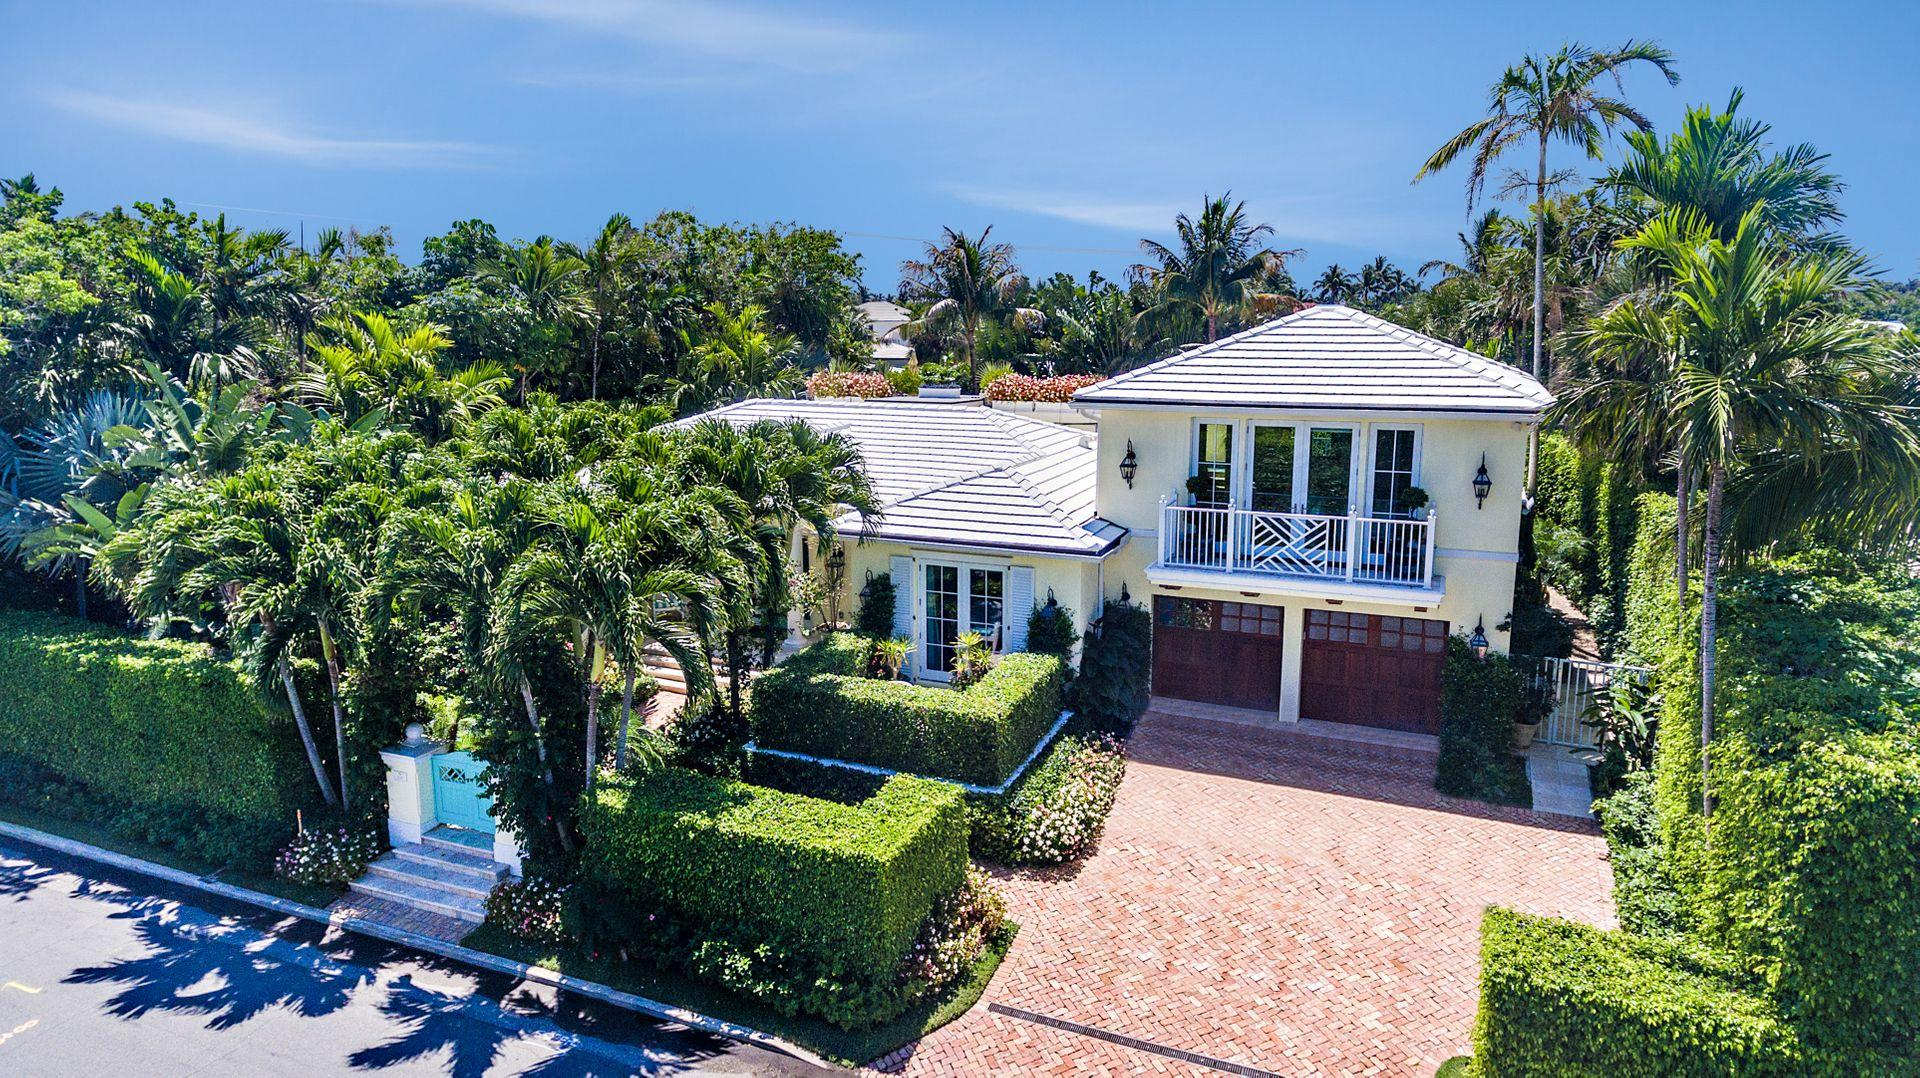 232 Angler Avenue, Palm Beach, Florida 33480, 5 Bedrooms Bedrooms, ,5.1 BathroomsBathrooms,Single Family,For Sale,Angler,RX-10521397